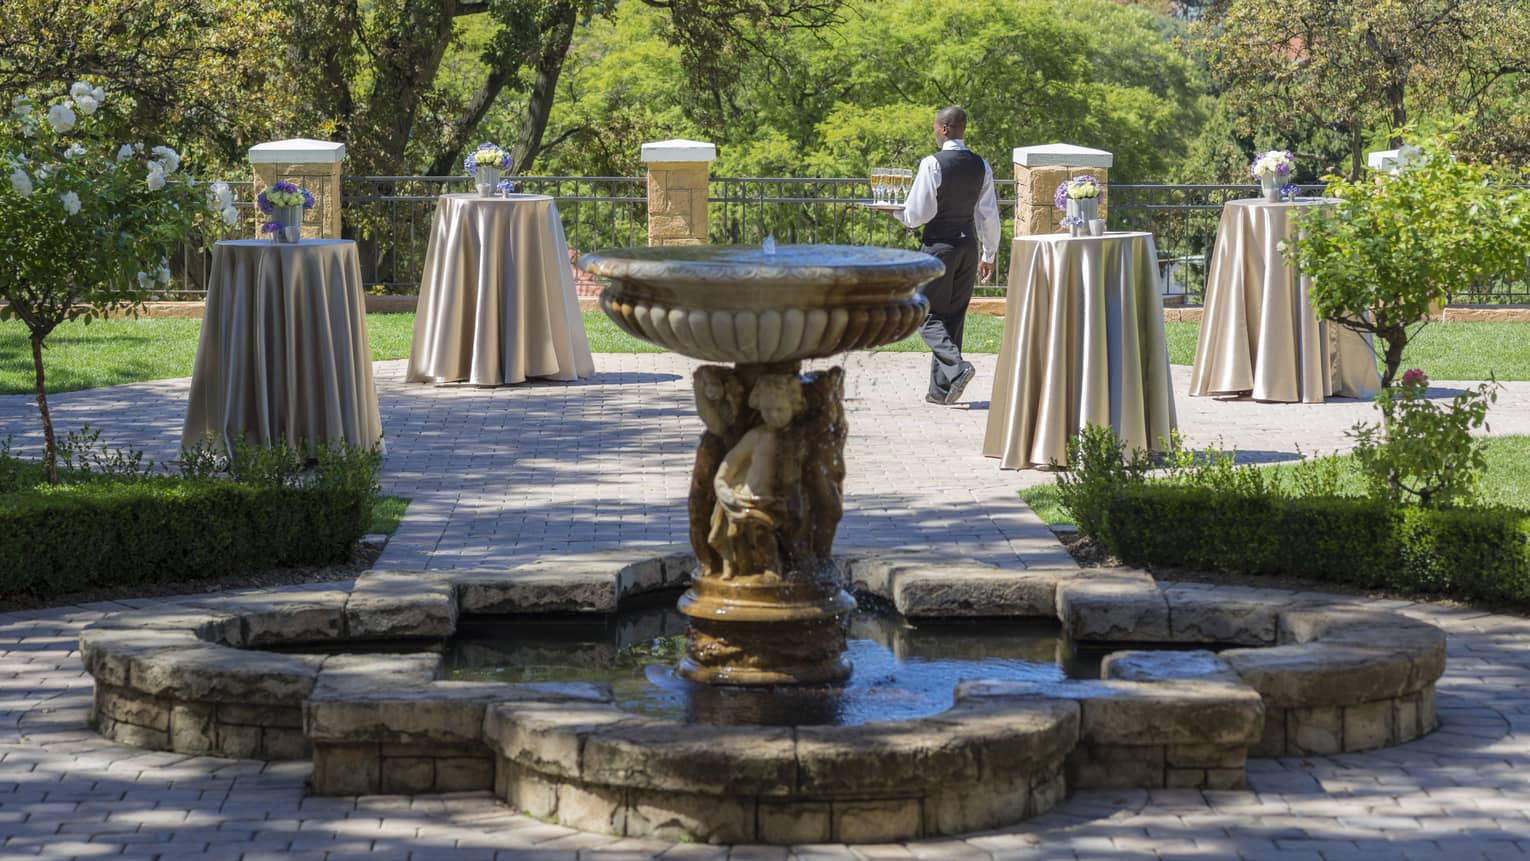 Fountain in garden event space dotted with small cocktail tables